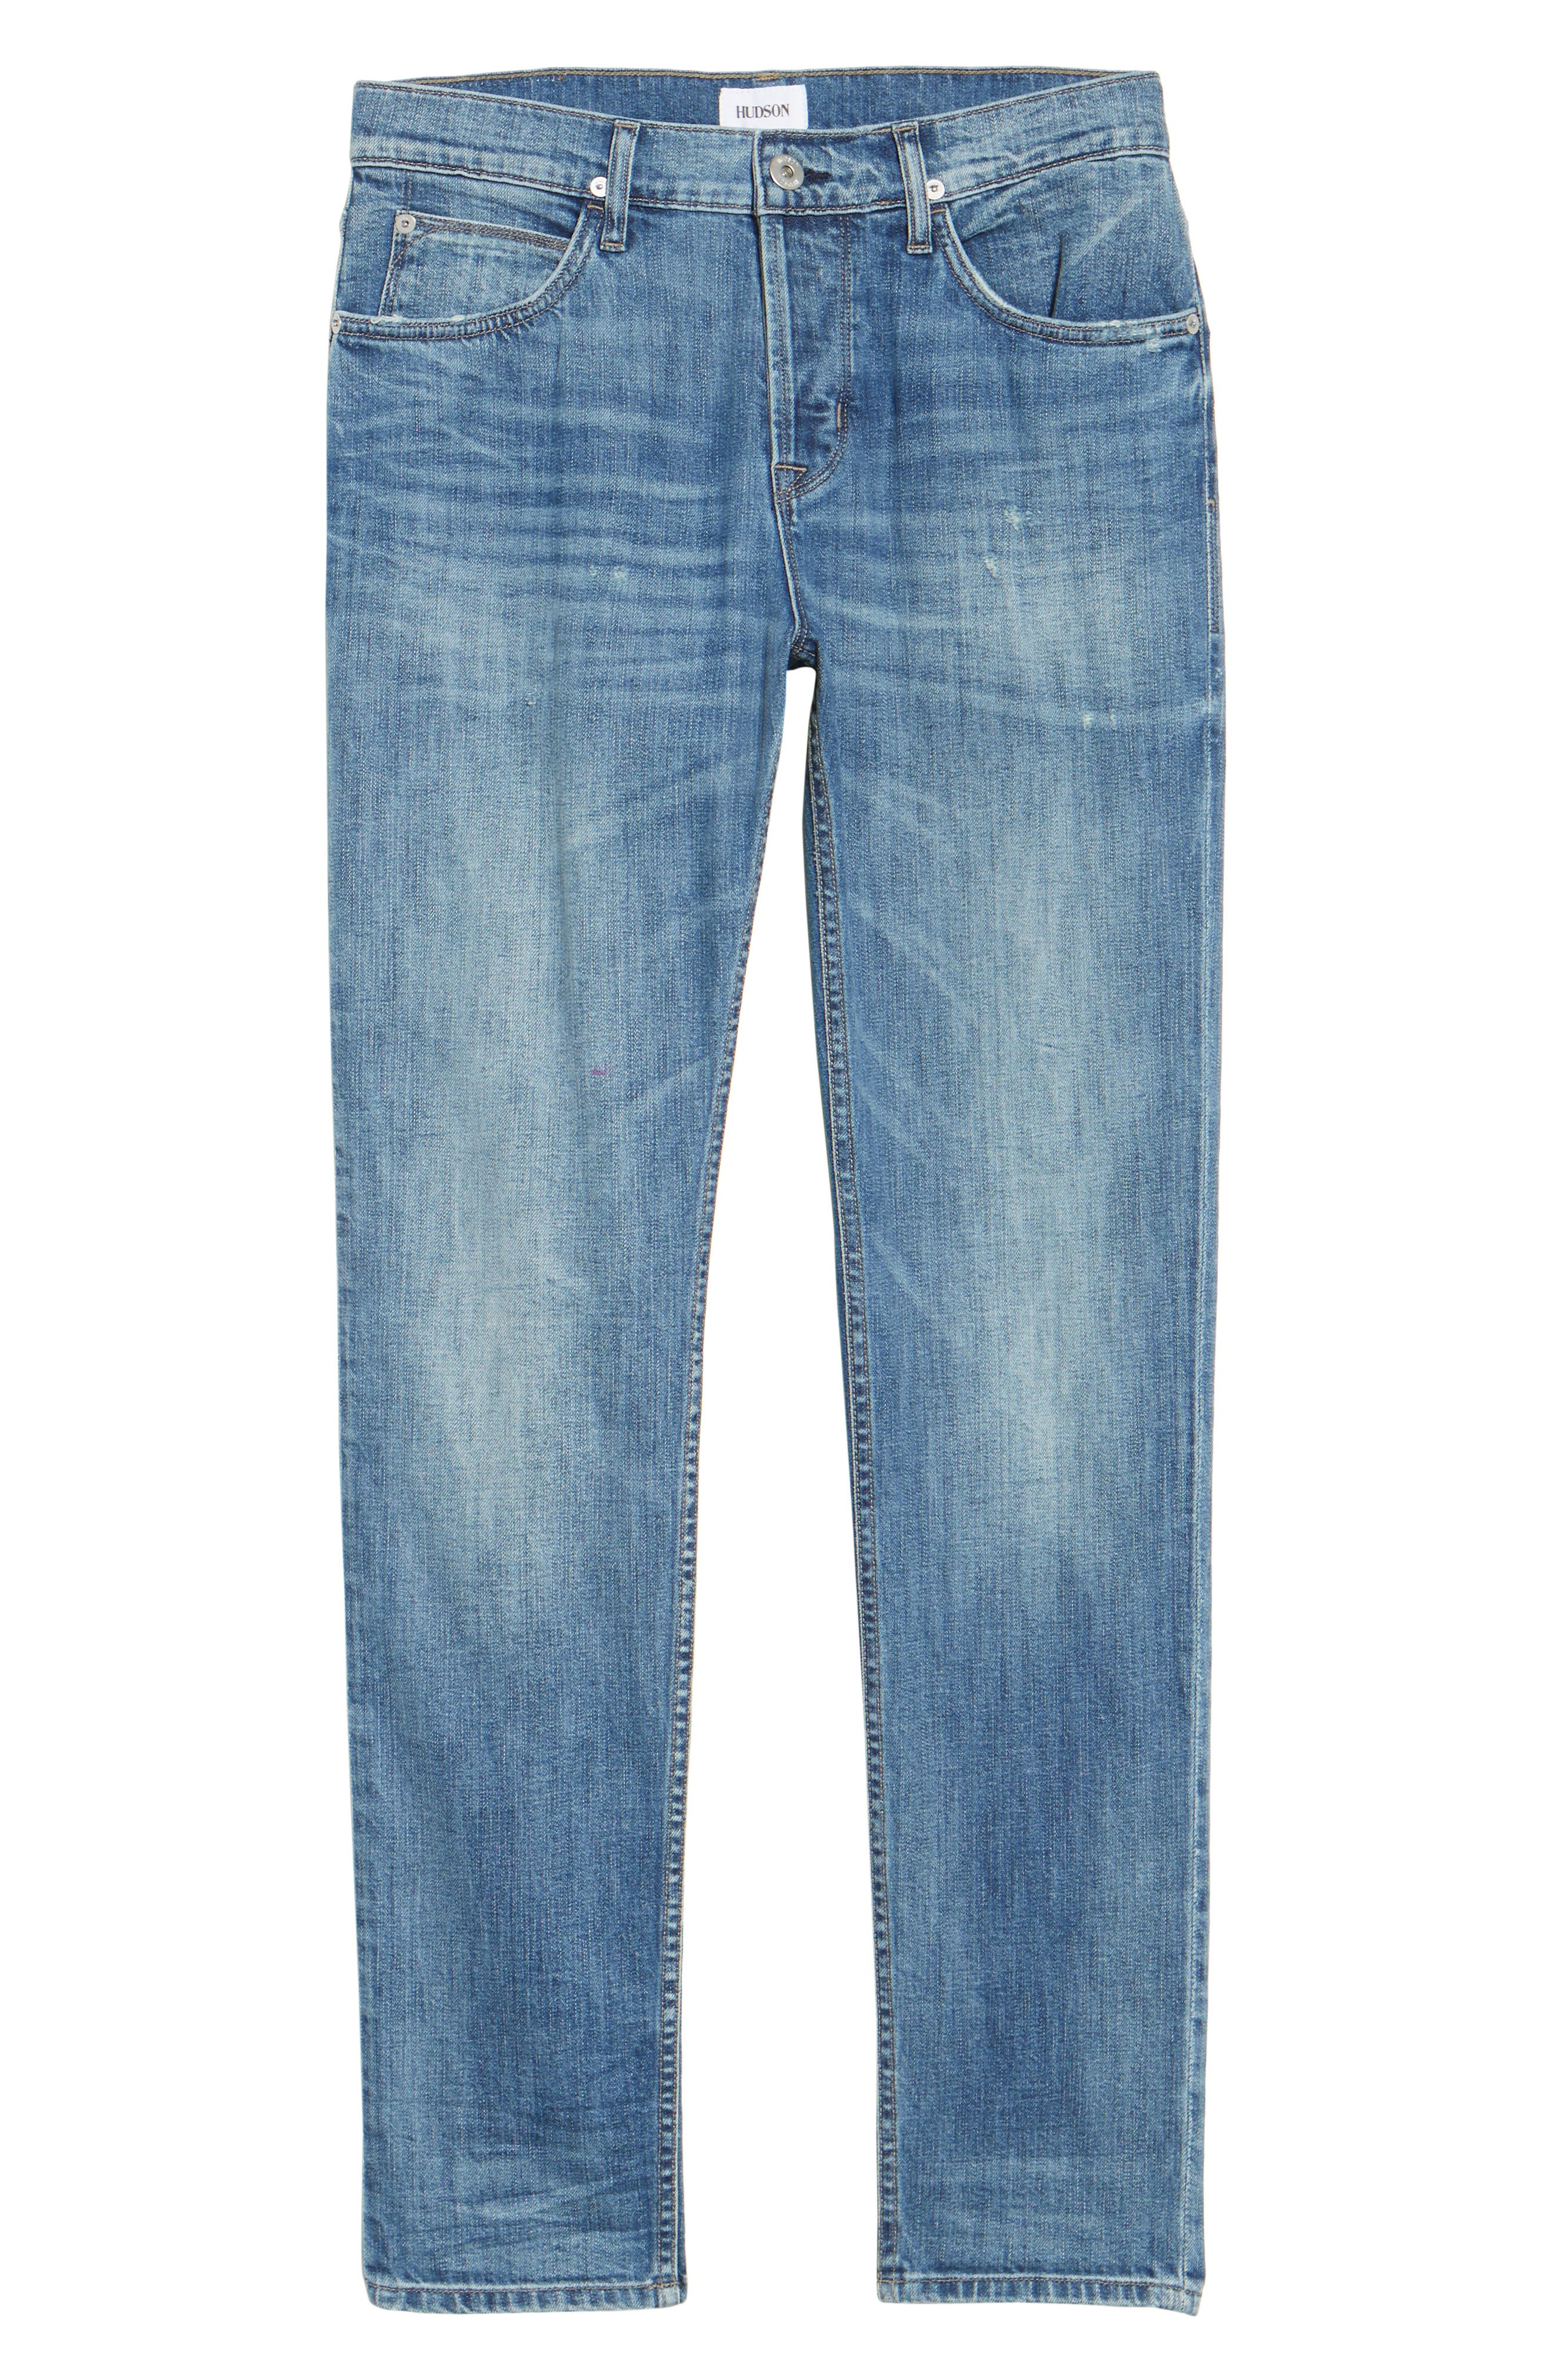 Axl Skinny Fit Jeans,                             Alternate thumbnail 6, color,                             RACKING